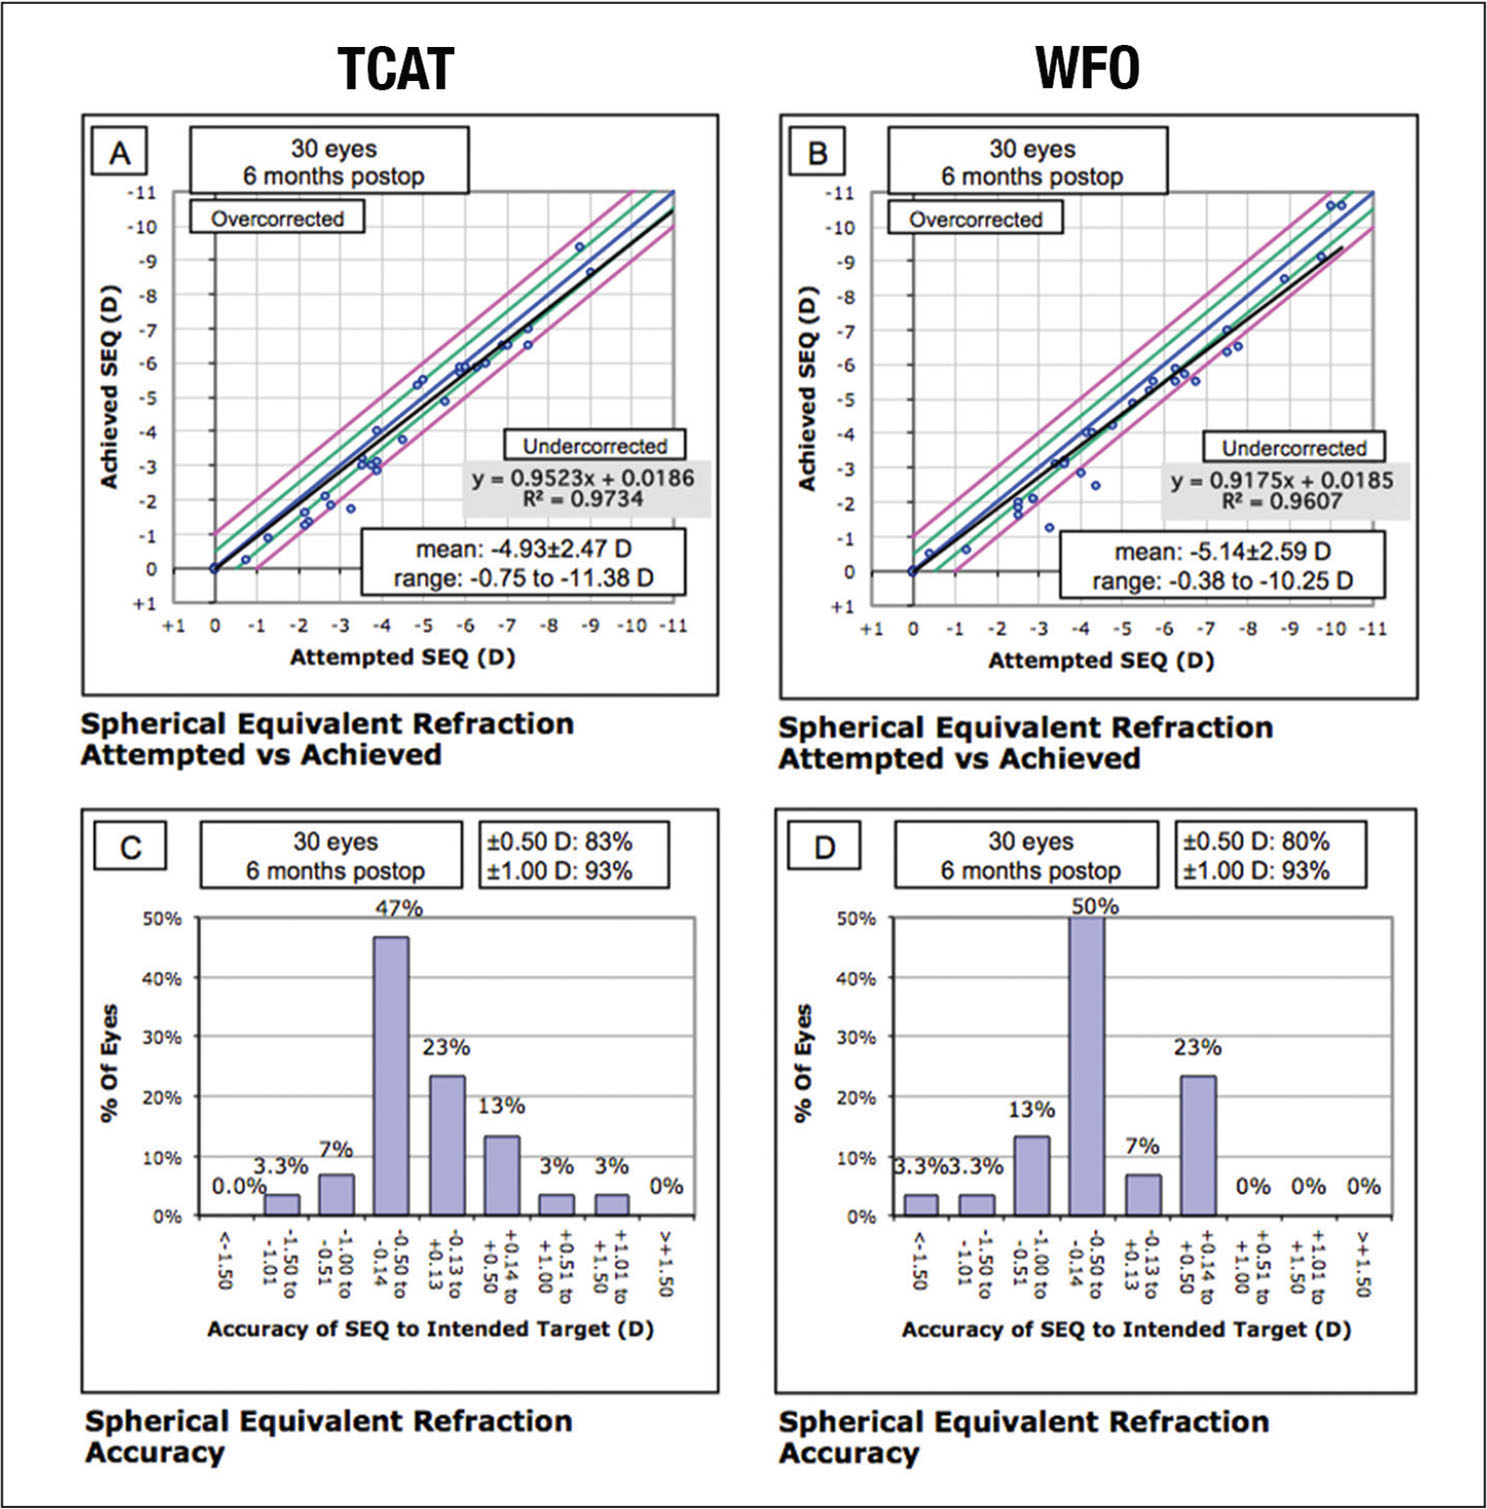 Standard refractive graphs showing refractive outcomes 6 months after surgery in the wavefront-optimized (WFO) ablation and topography-guided custom ablation (TCAT) groups. Attempted versus achieved spherical equivalent (SEQ) in the form of a scatter plot in the (A) TCAT and (B) WFO groups. Spherical equivalent refractive accuracy in terms of number of eyes that were within ±0.50 diopters (D) of the attempted correction in the (C) TCAT and (D) WFO groups.